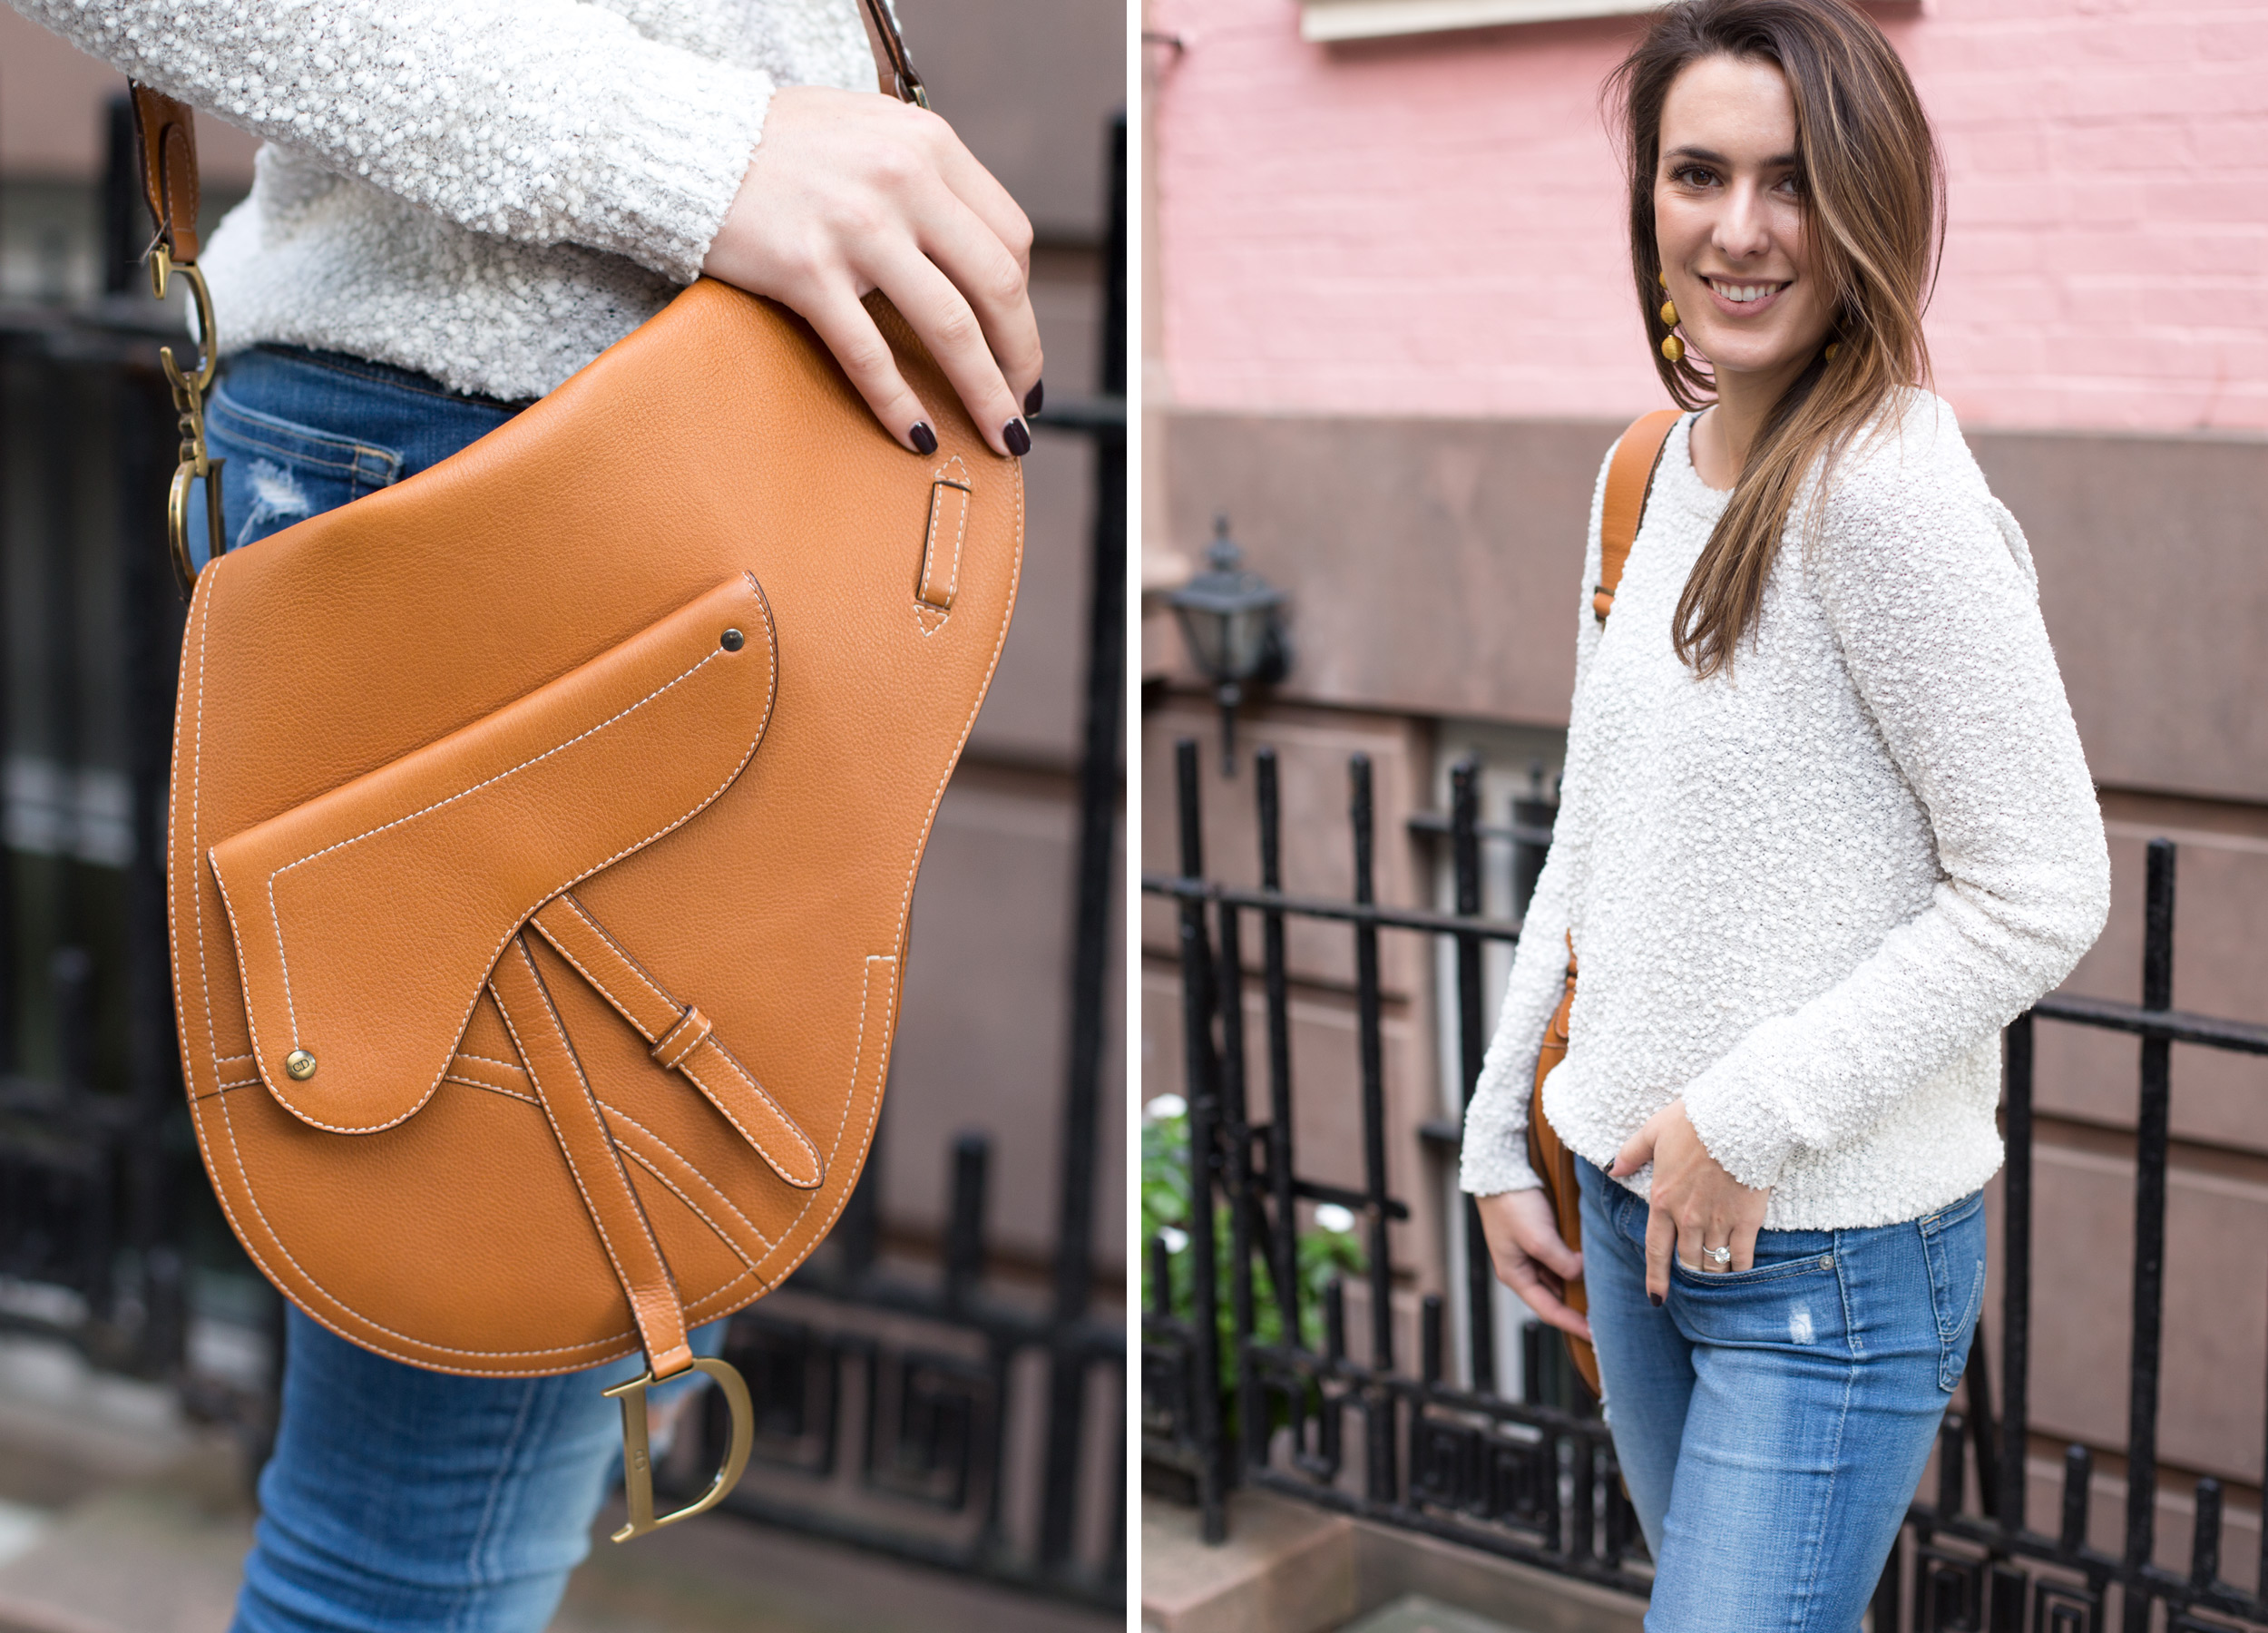 Style Blogger and Photographer Samantha Metell wearing a Dior Saddle Bag, Lilla P and Stuart Weitzman